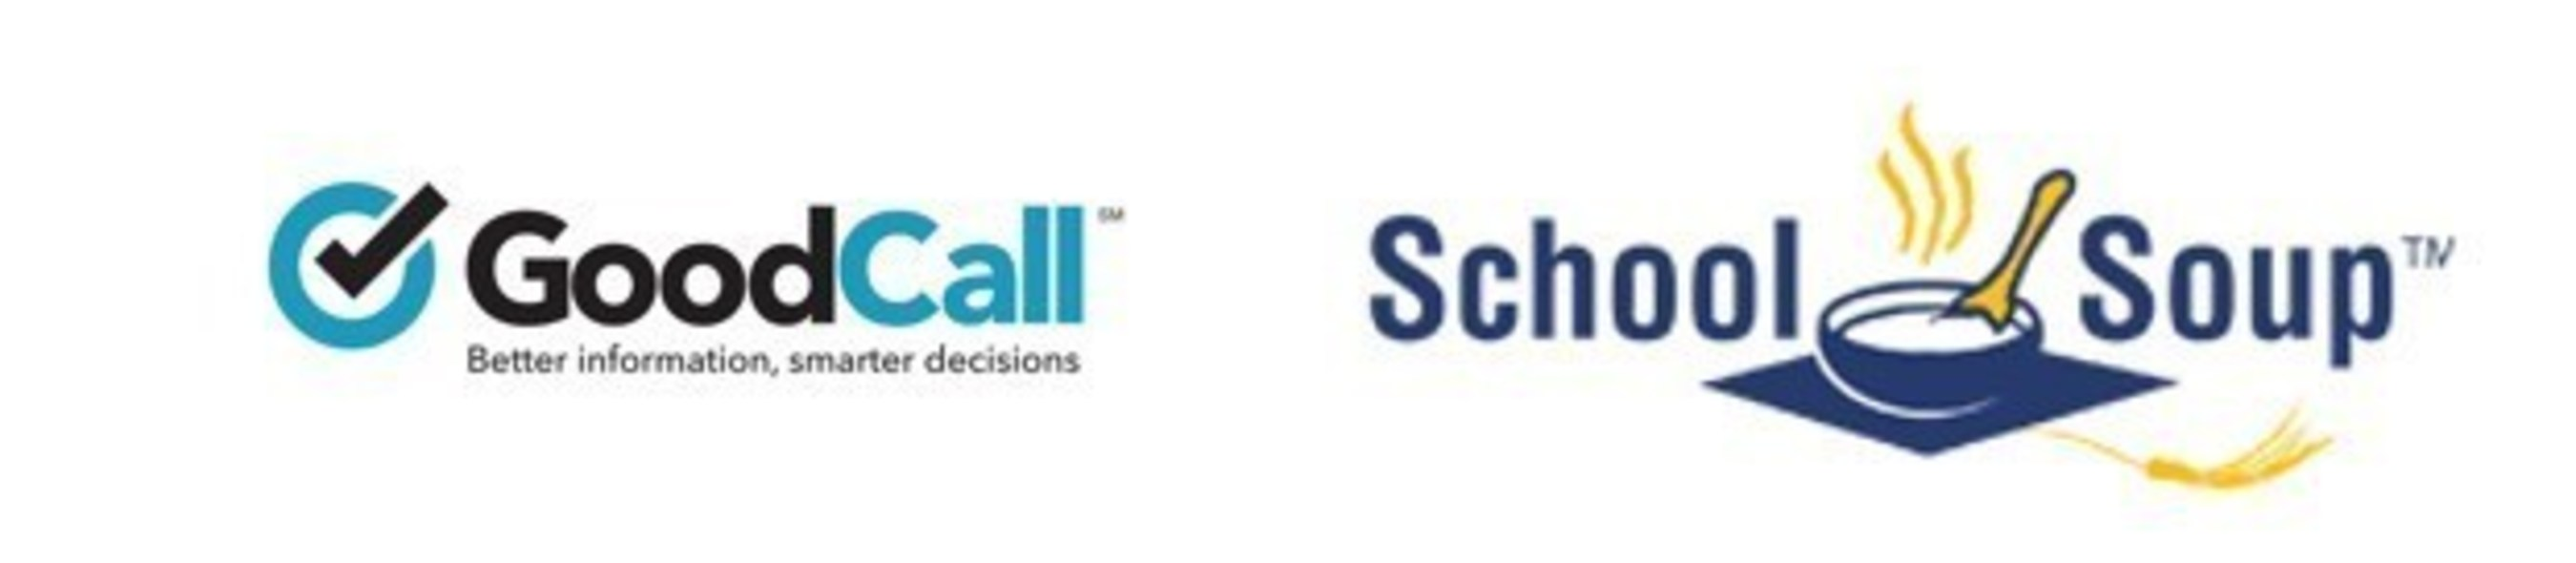 Charlotte Startup, GoodCall, Expands Scholarship Search Engine Offering Through Acquisition of SchoolSoup.com